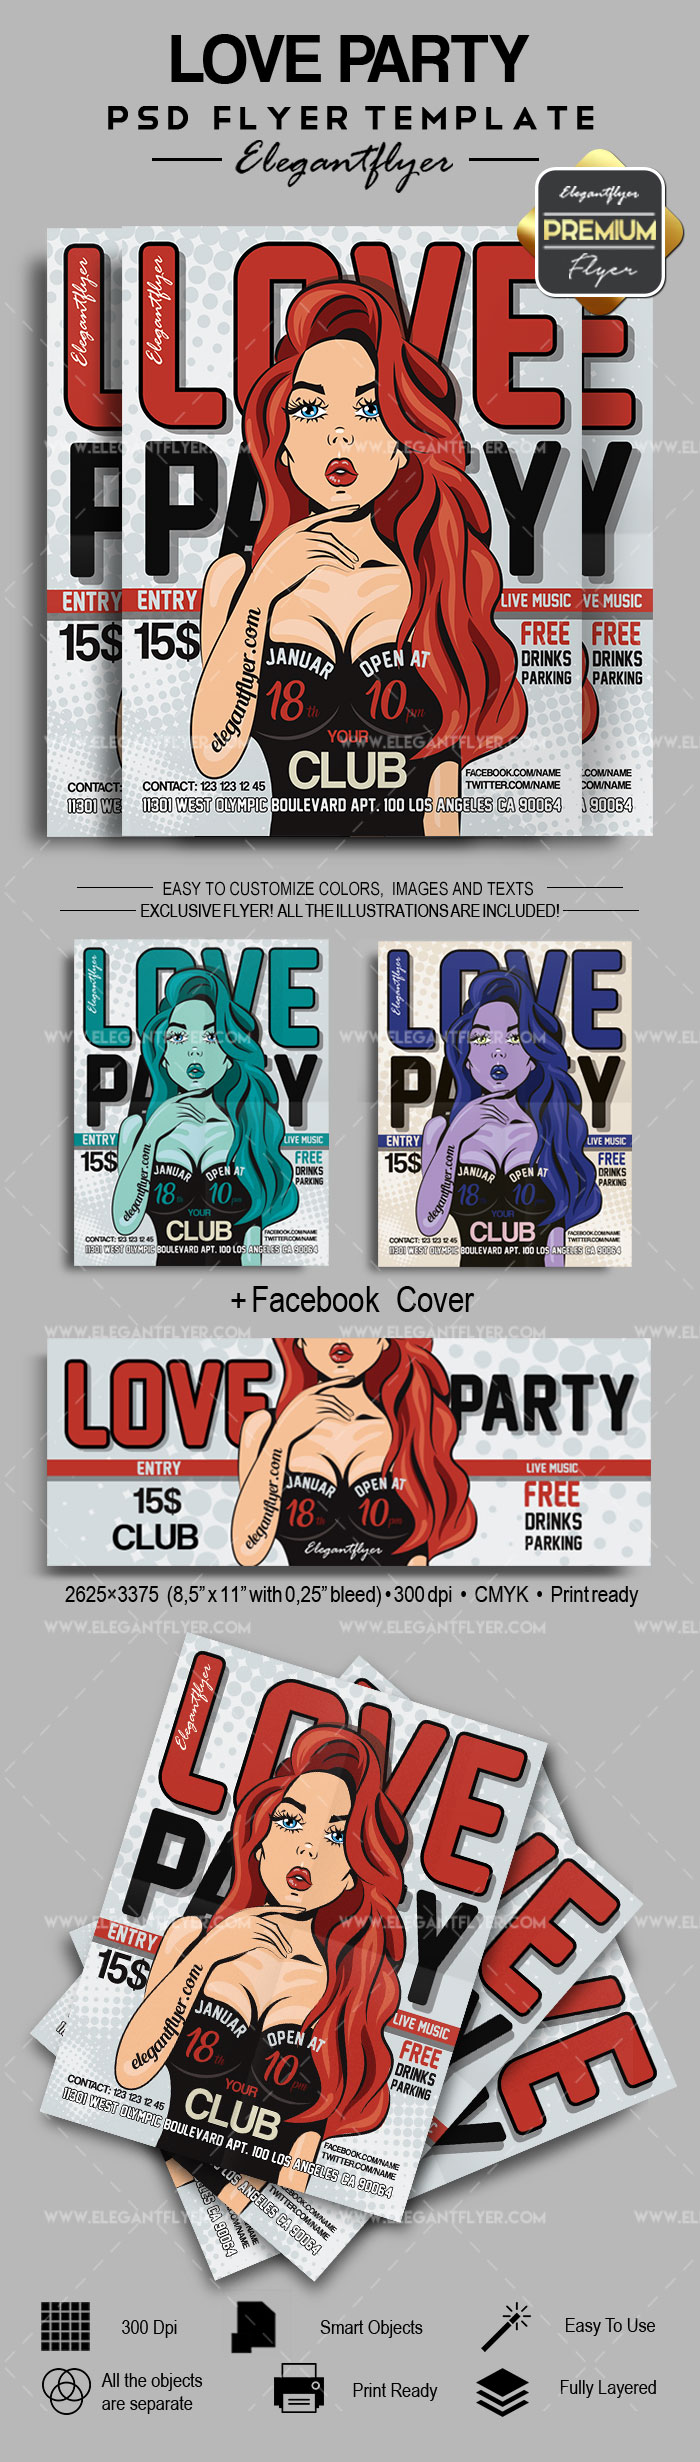 Love Party- Flyer PSD Template